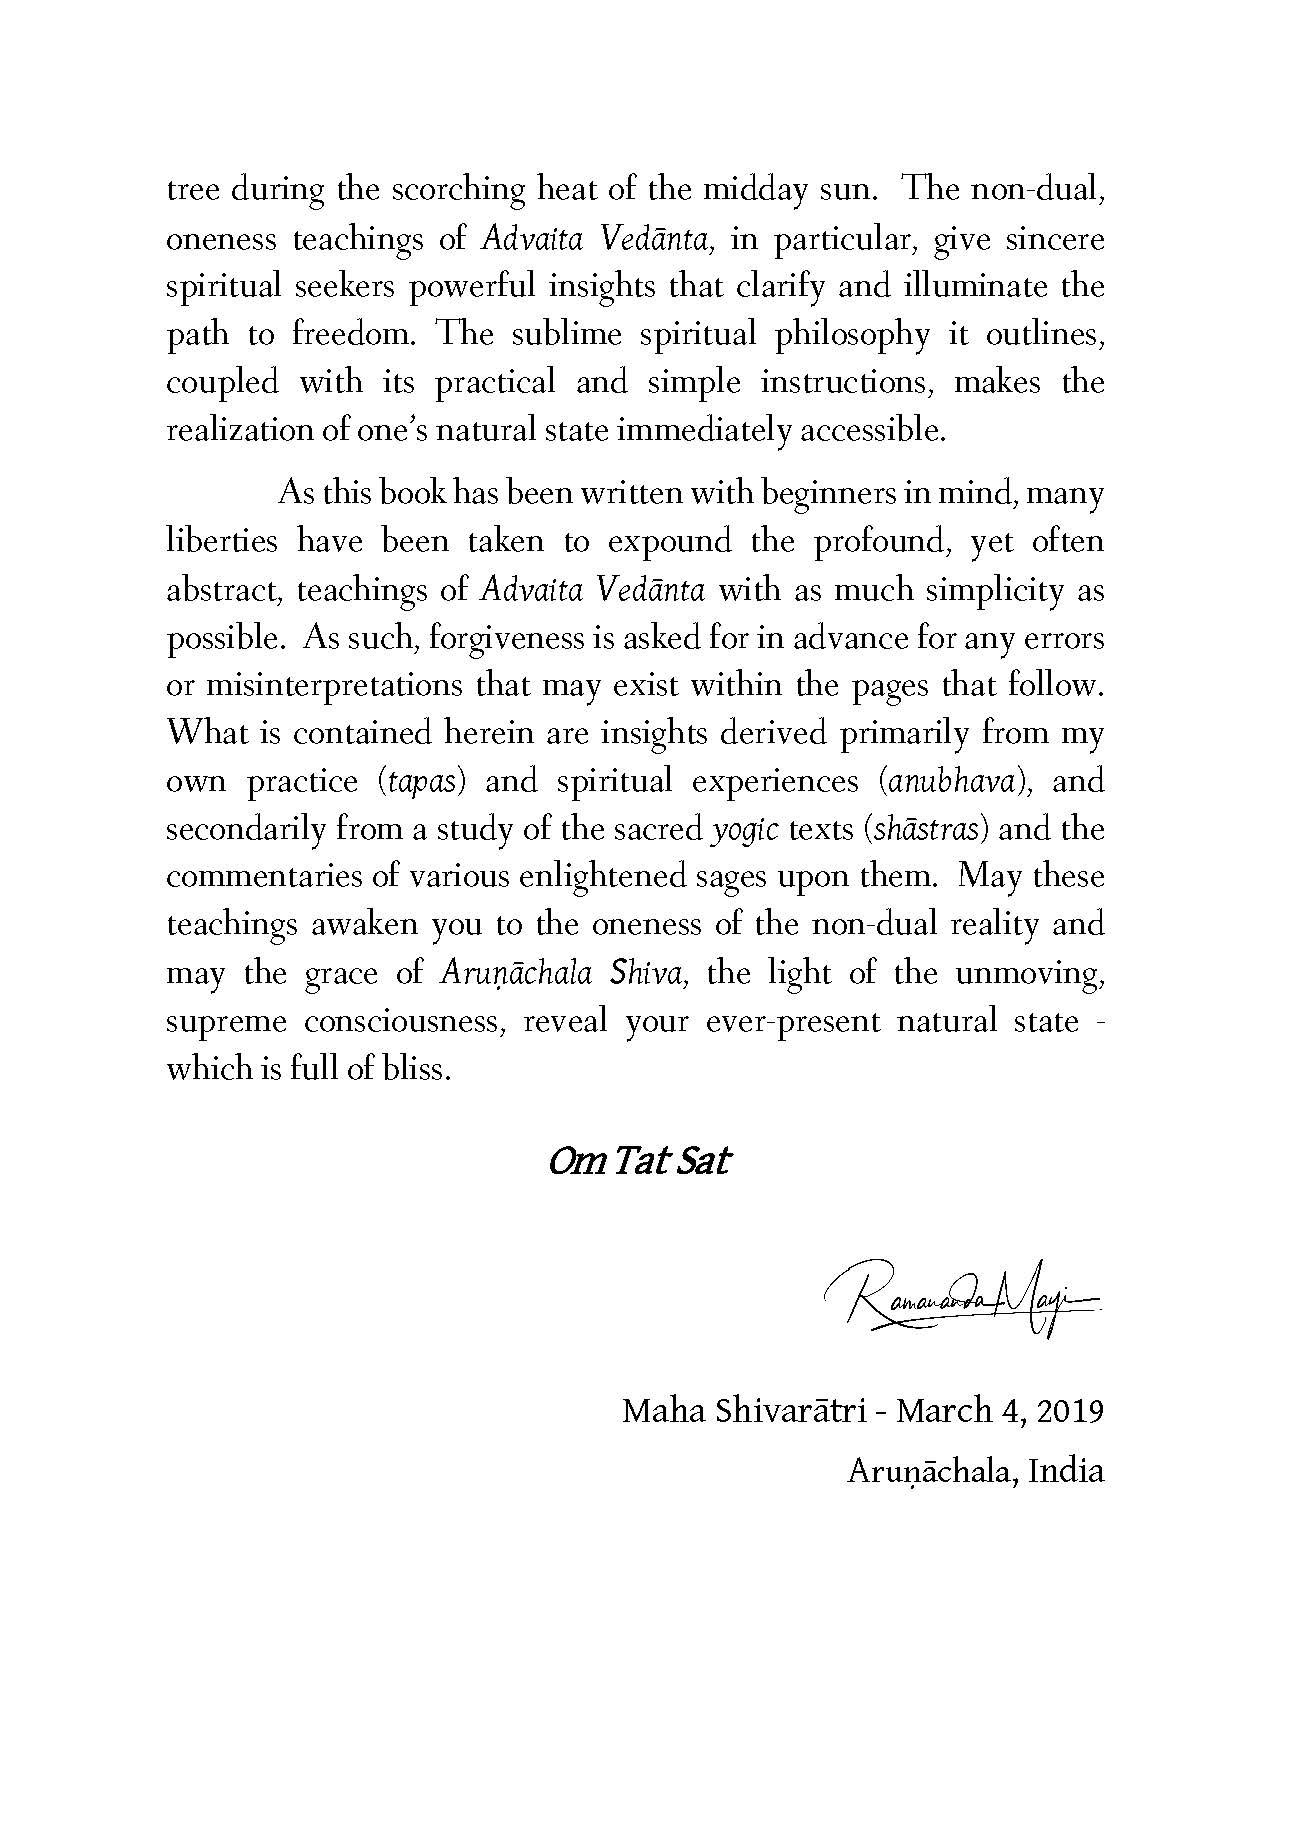 The Way of Oneness - PDF Download_Page_009